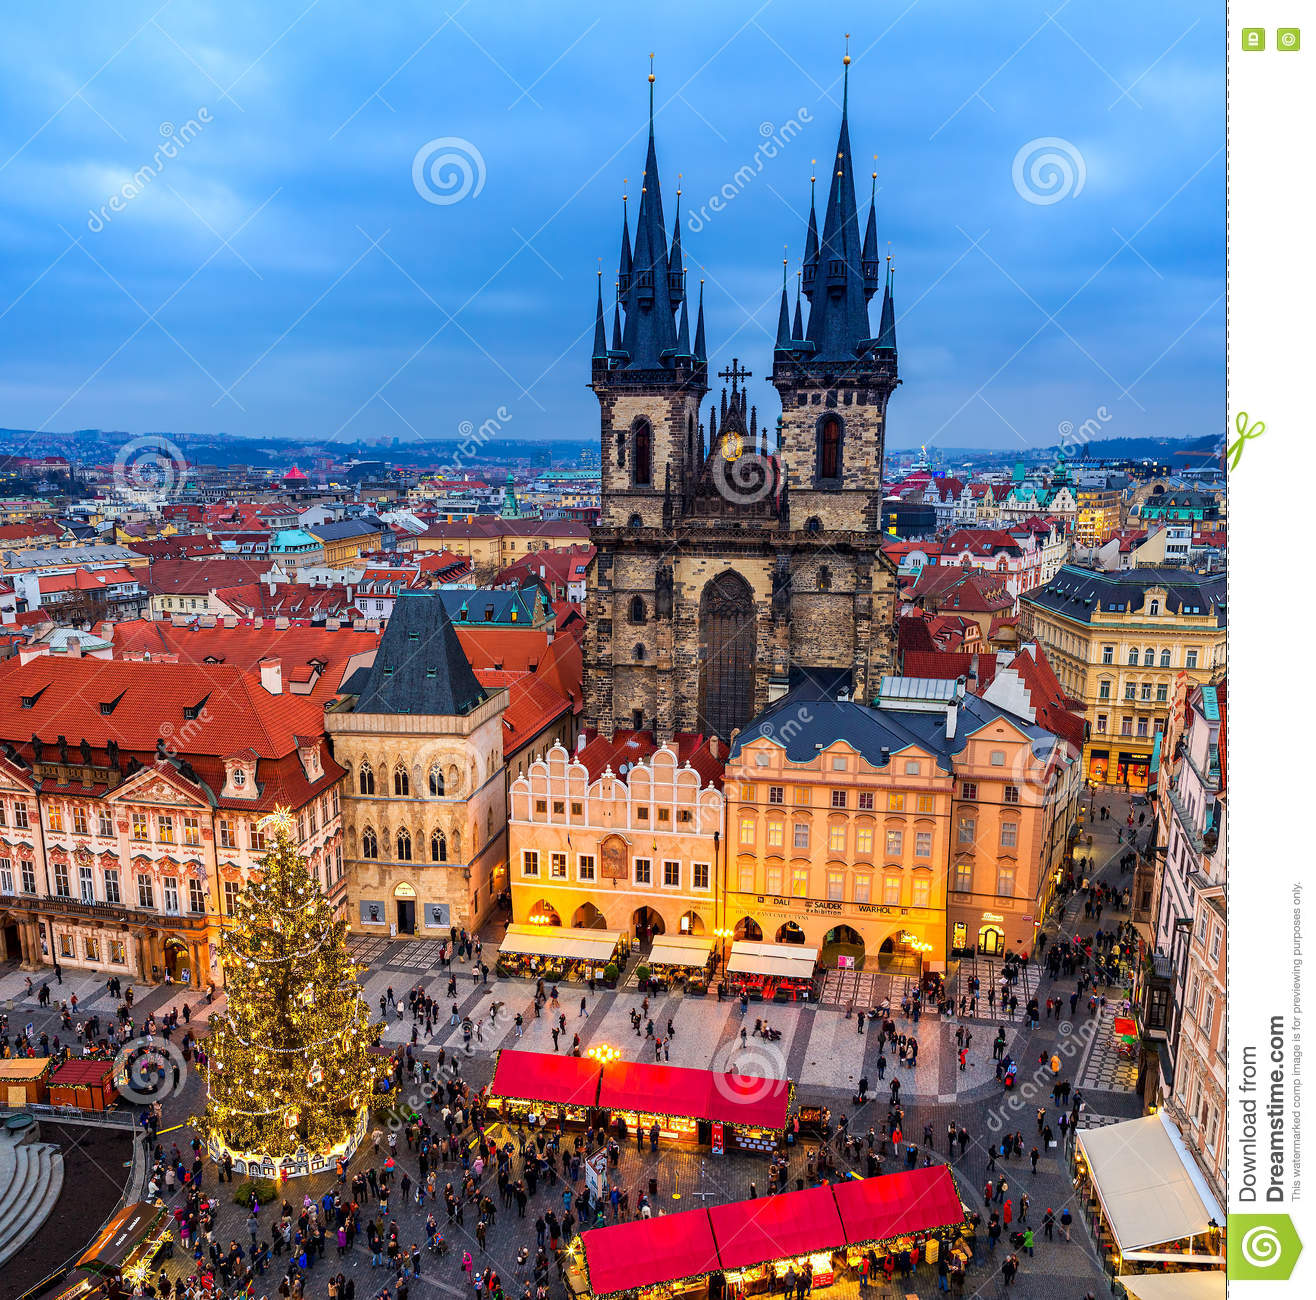 Old Town Square and Christmas market in Prague, Czech Republic.